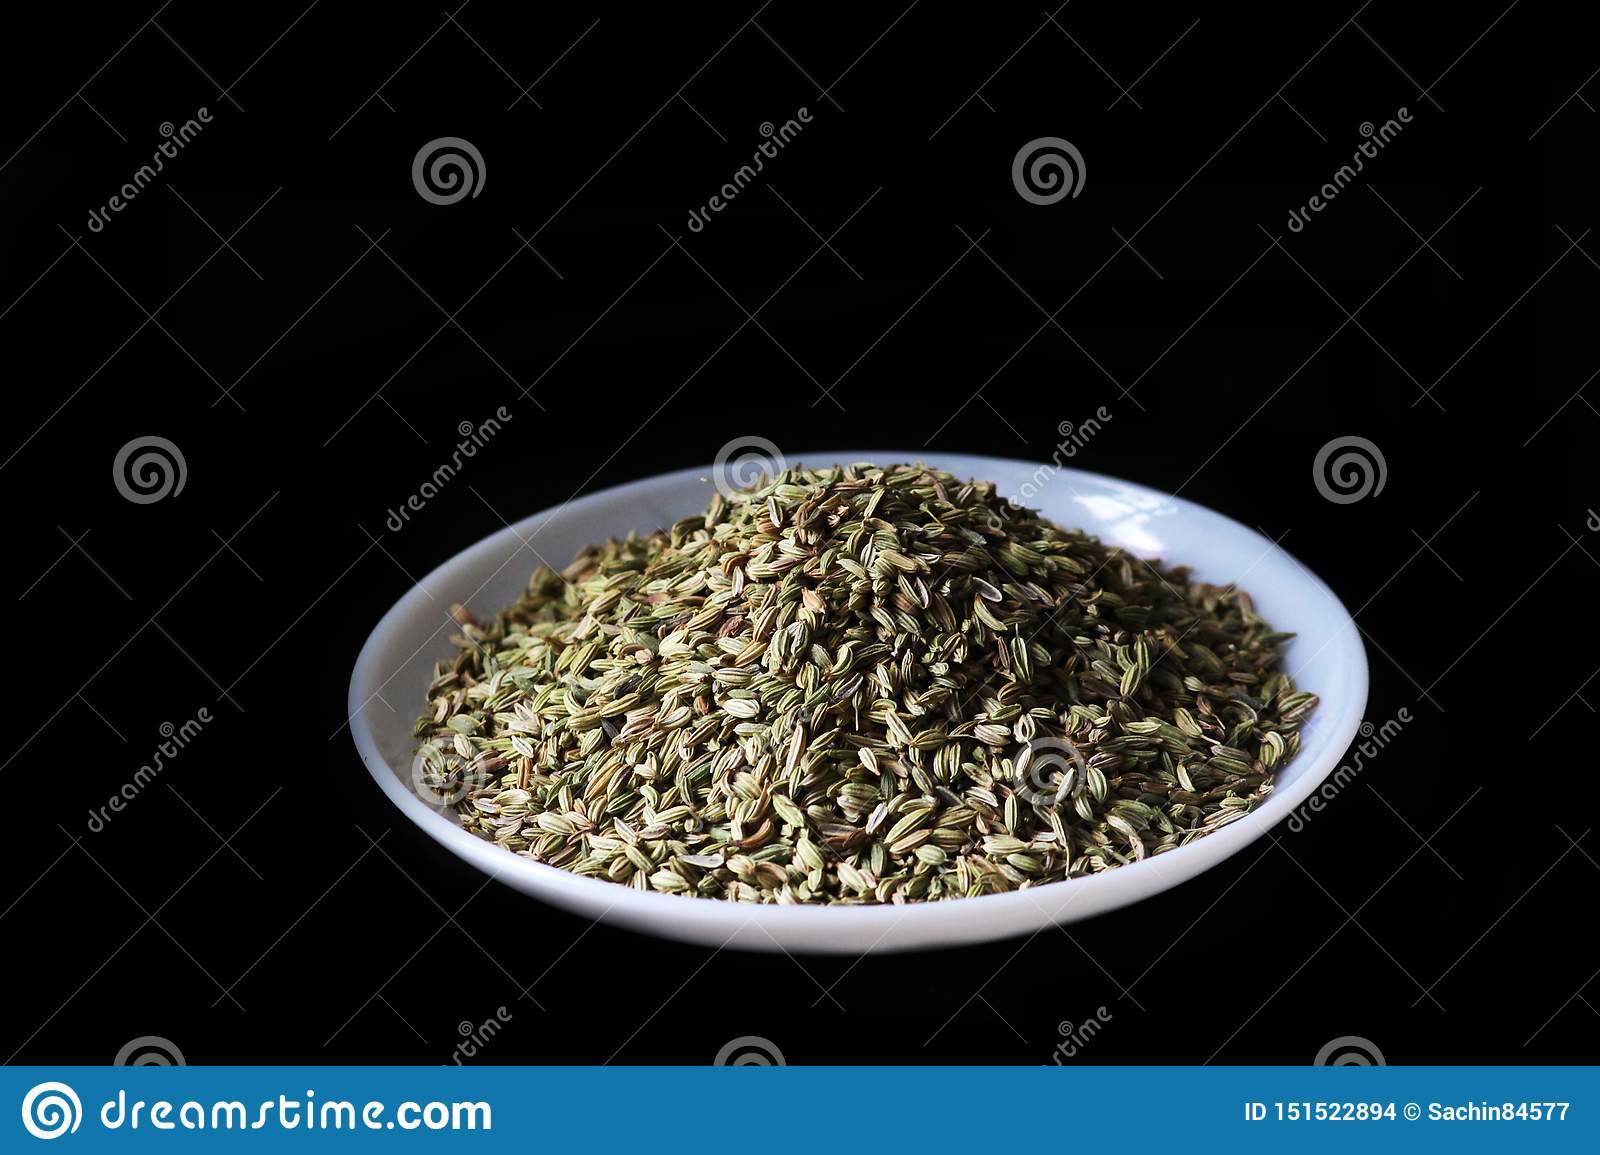 Cumin seeds isolated on a black background - image